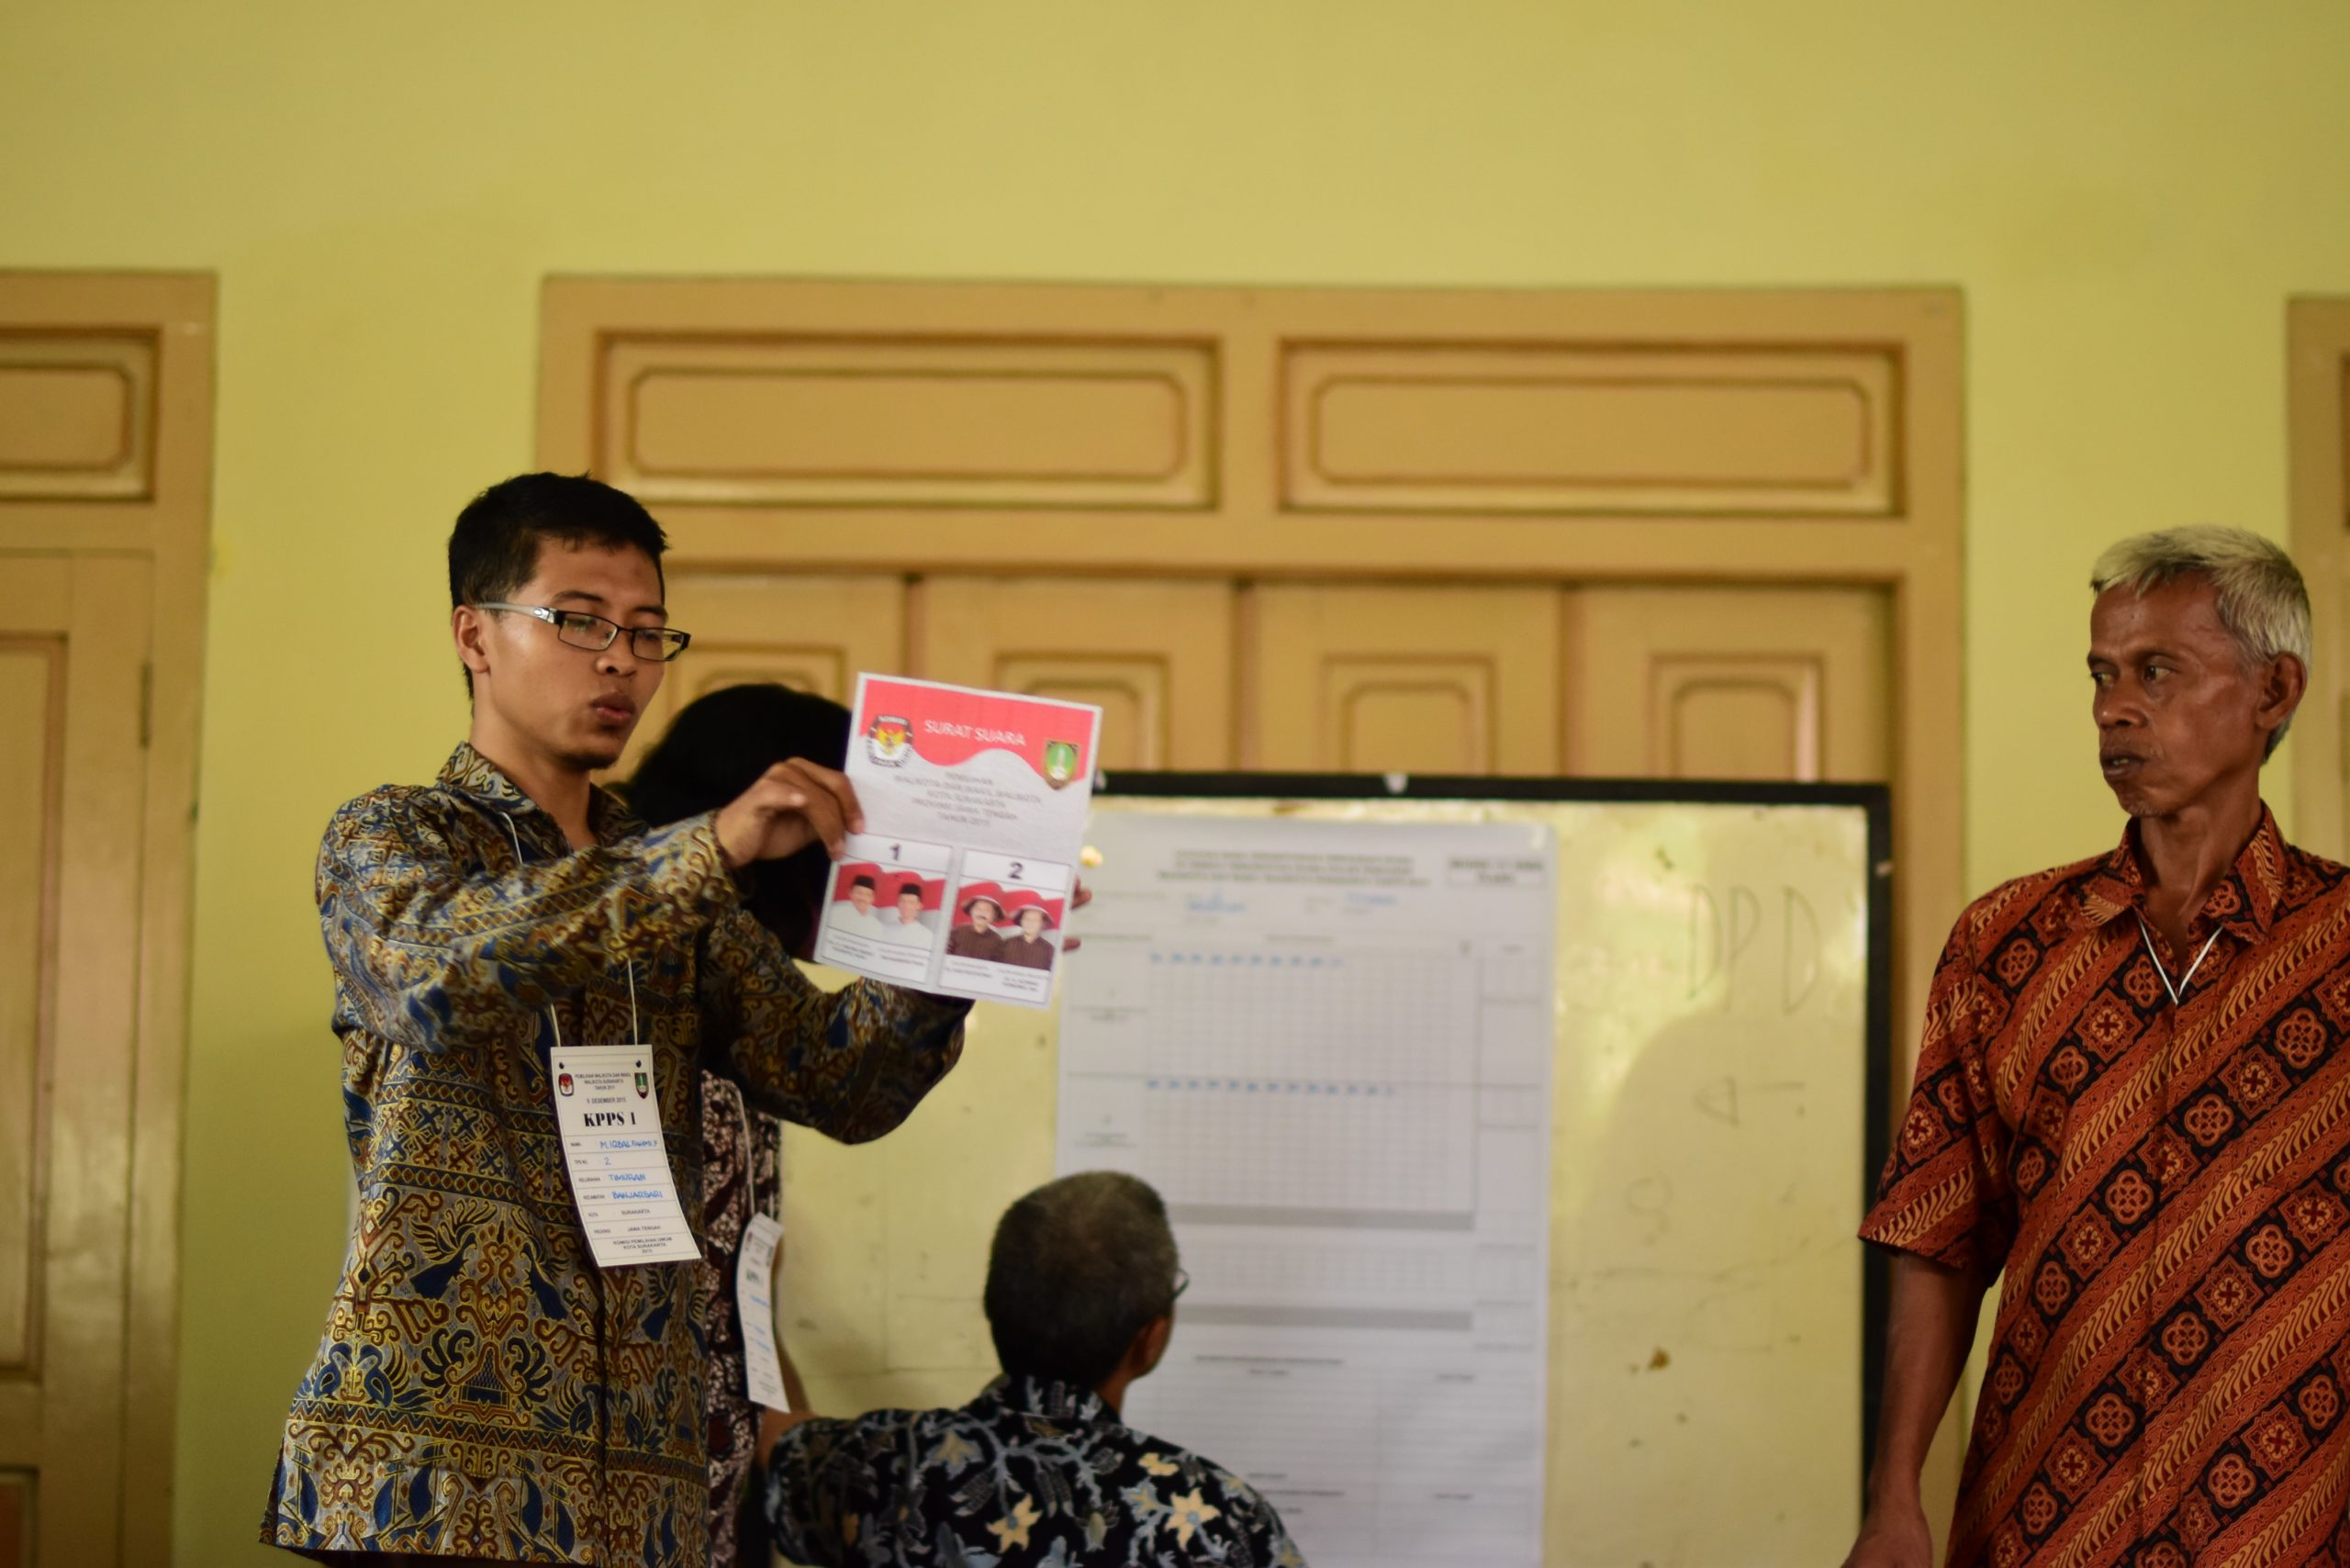 Vote-counting in the Widodo bailiwick of Solo during regional elections held in late 2015. Photo: Simon Roughneen